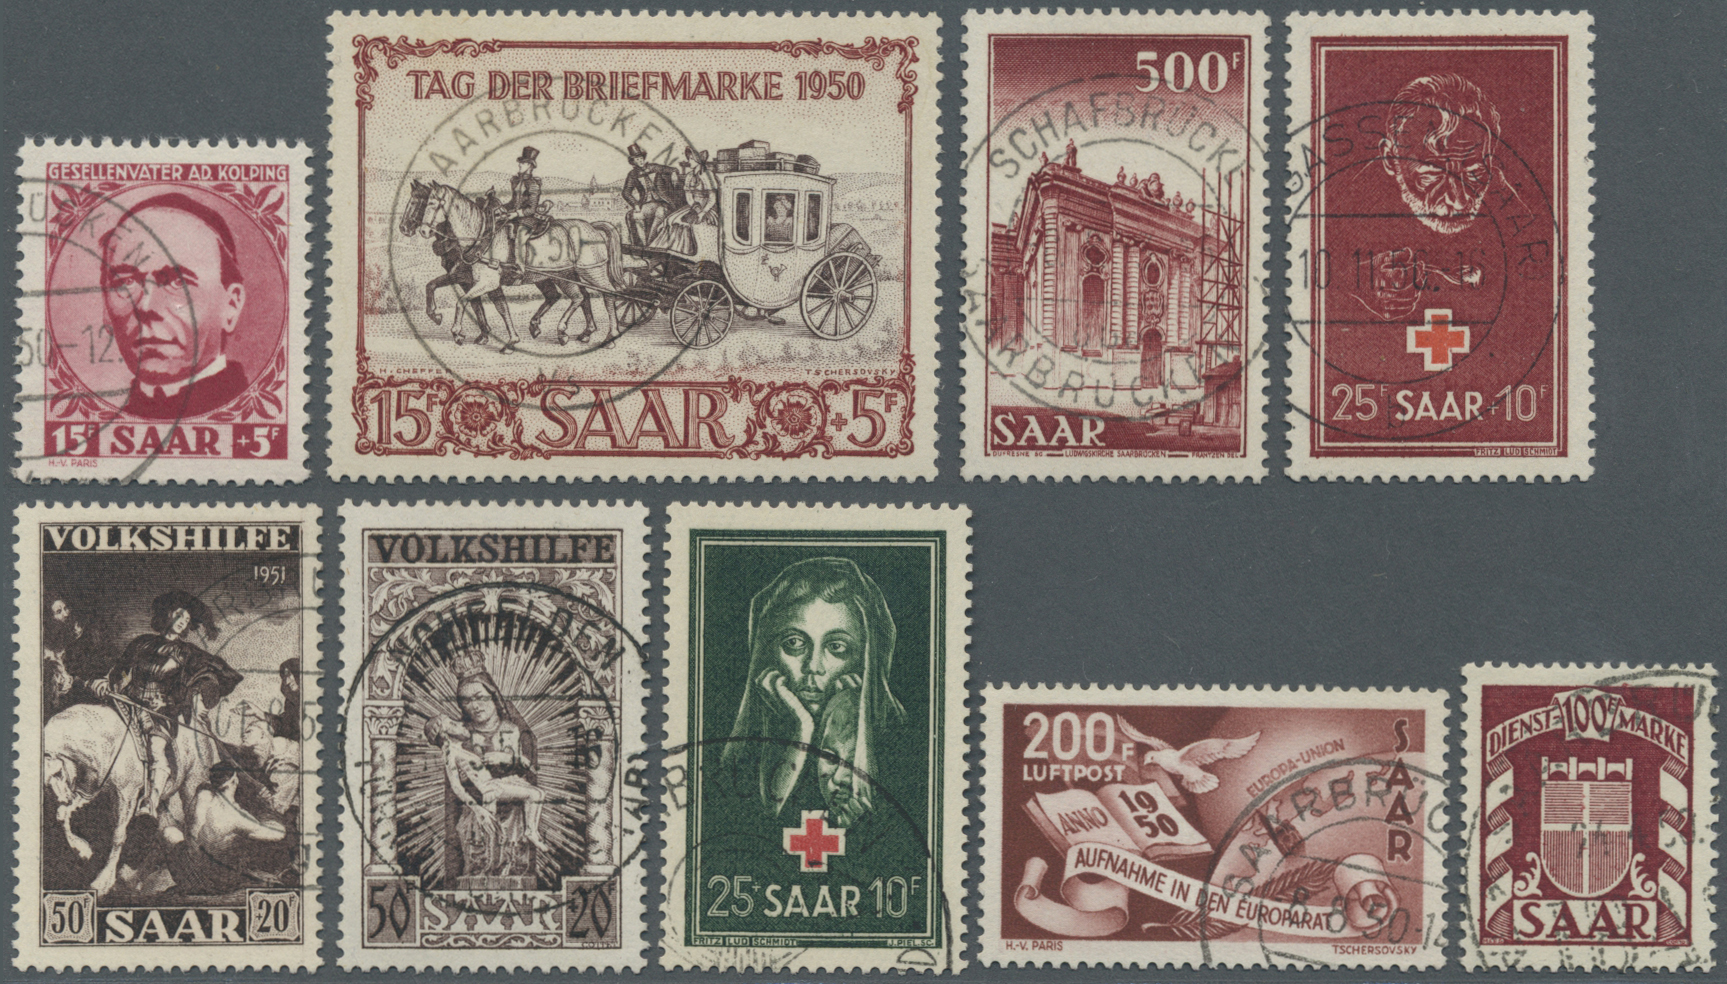 Lot 38269 - Saarland und OPD Saarbrücken  -  Auktionshaus Christoph Gärtner GmbH & Co. KG Collections Germany,  Collections Supplement, Surprise boxes #39 Day 7